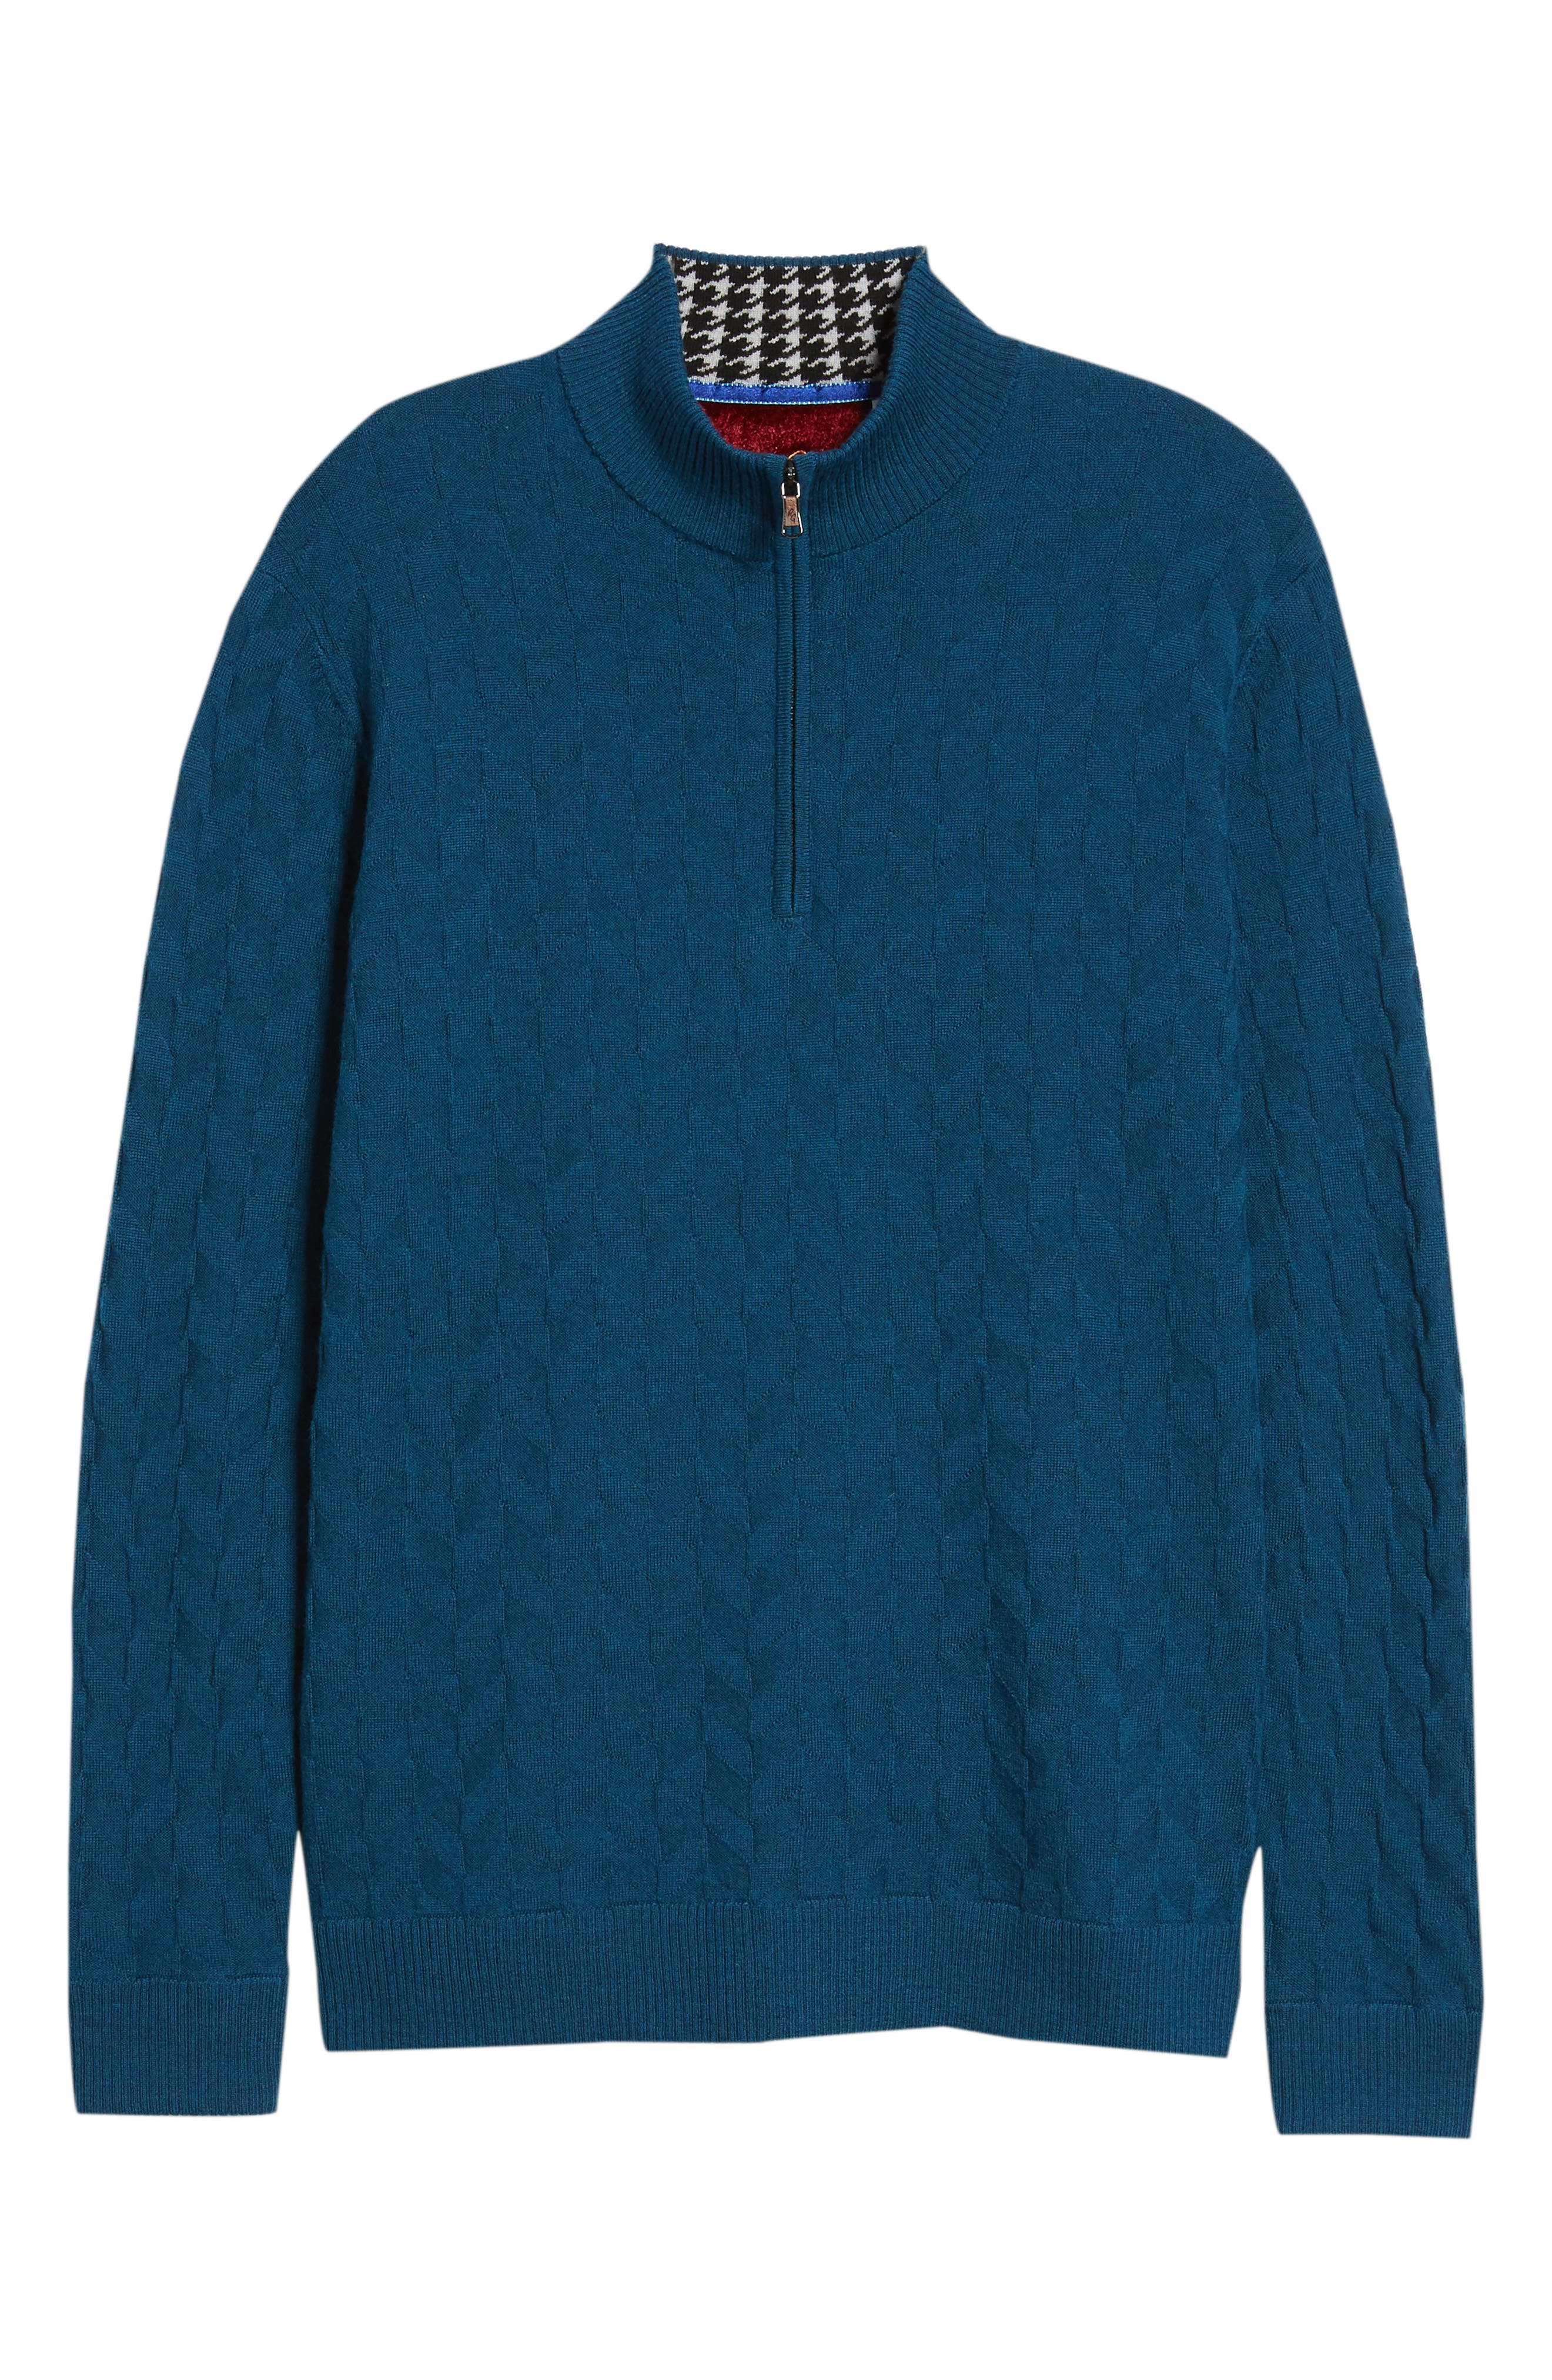 Rowley Classic Fit Quarter Zip Sweater,                             Alternate thumbnail 6, color,                             TEAL